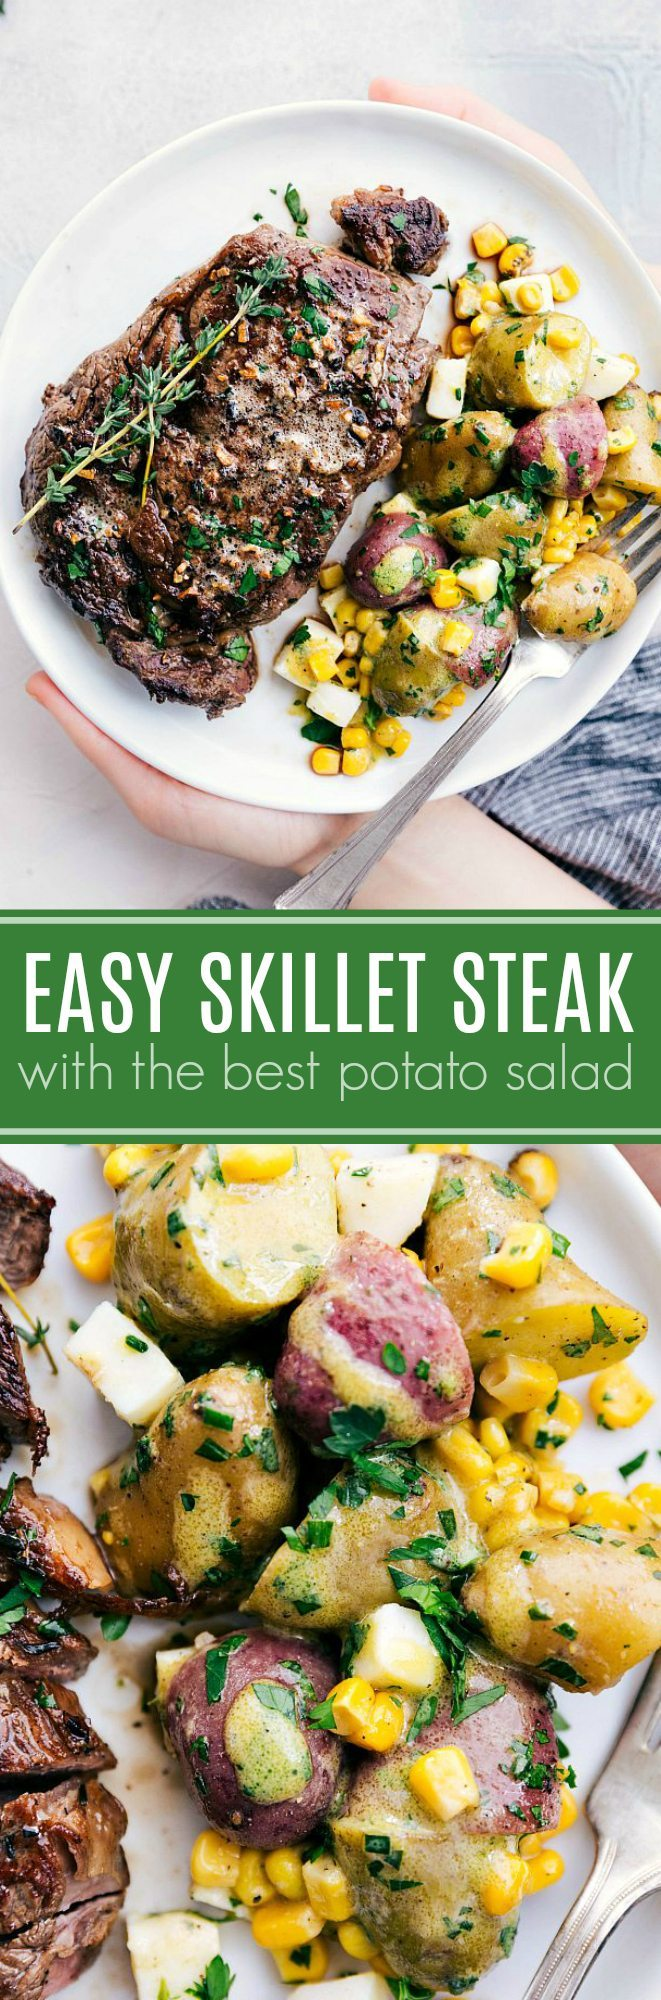 The ultimate BEST EVER herbed butter skillet steak with an insanely good potato salad!! A super easy and delicious dinner that everyone will go crazy for! via chelseasmessyapron.com #skillet #steak #potatoes #easy #quick #potato #salad #mozzarella #corn #dijon #dressing #creamy #dinner #30 #minute #meal